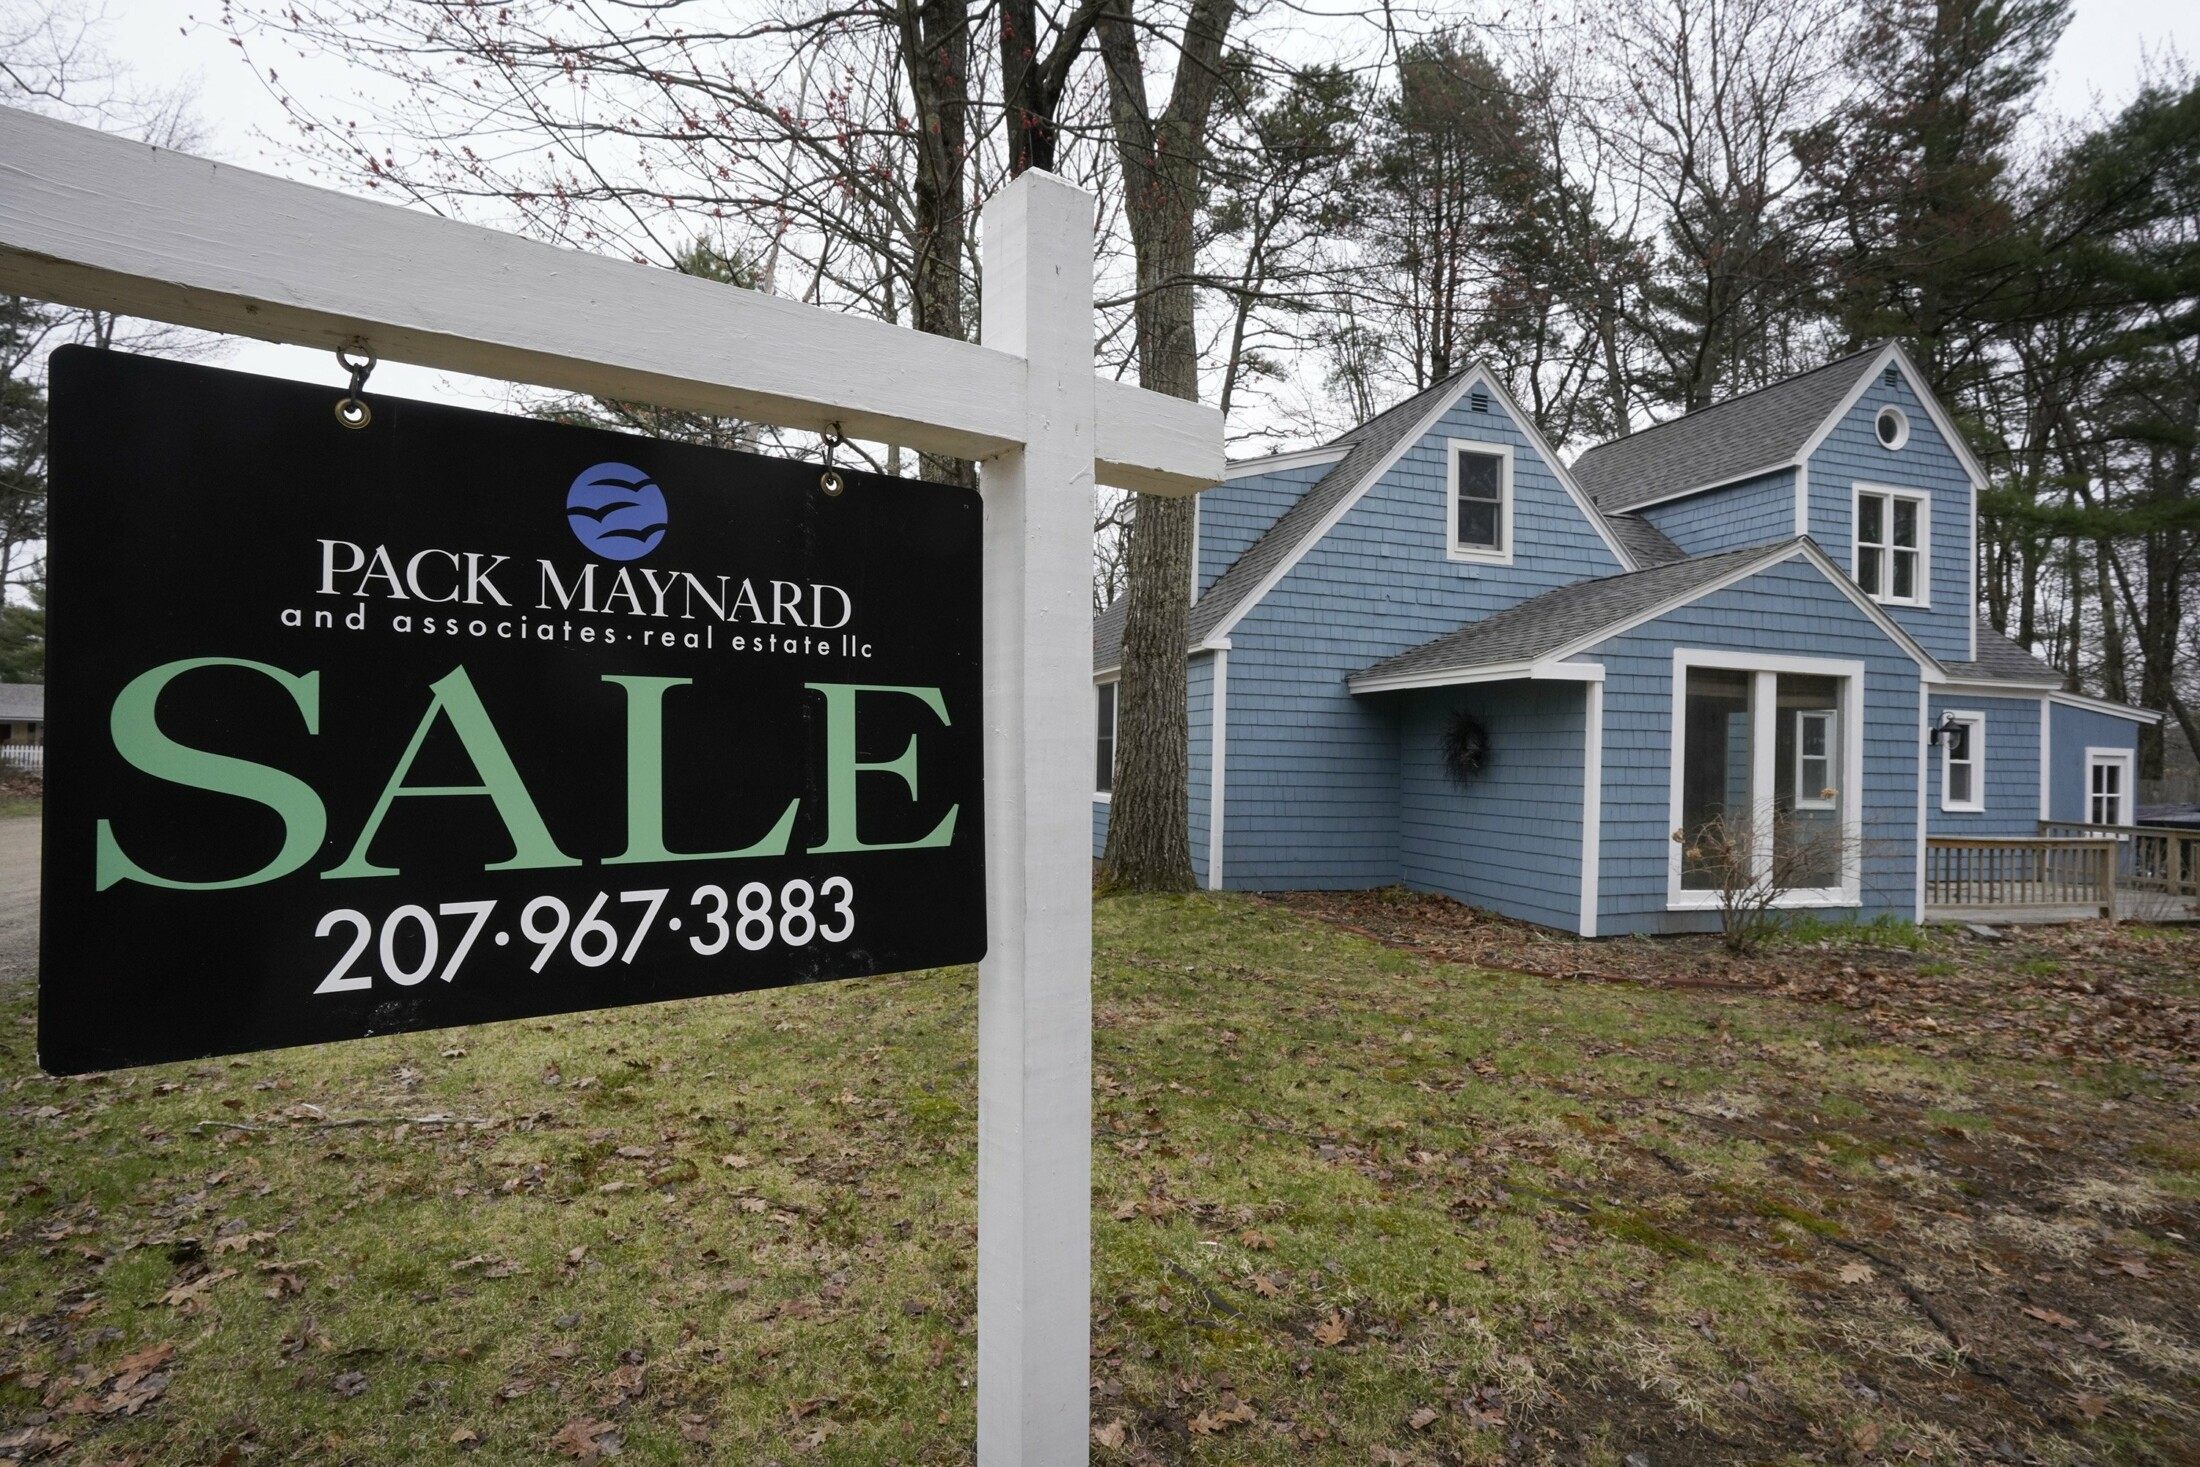 Declining home prices provide another sign that real estate